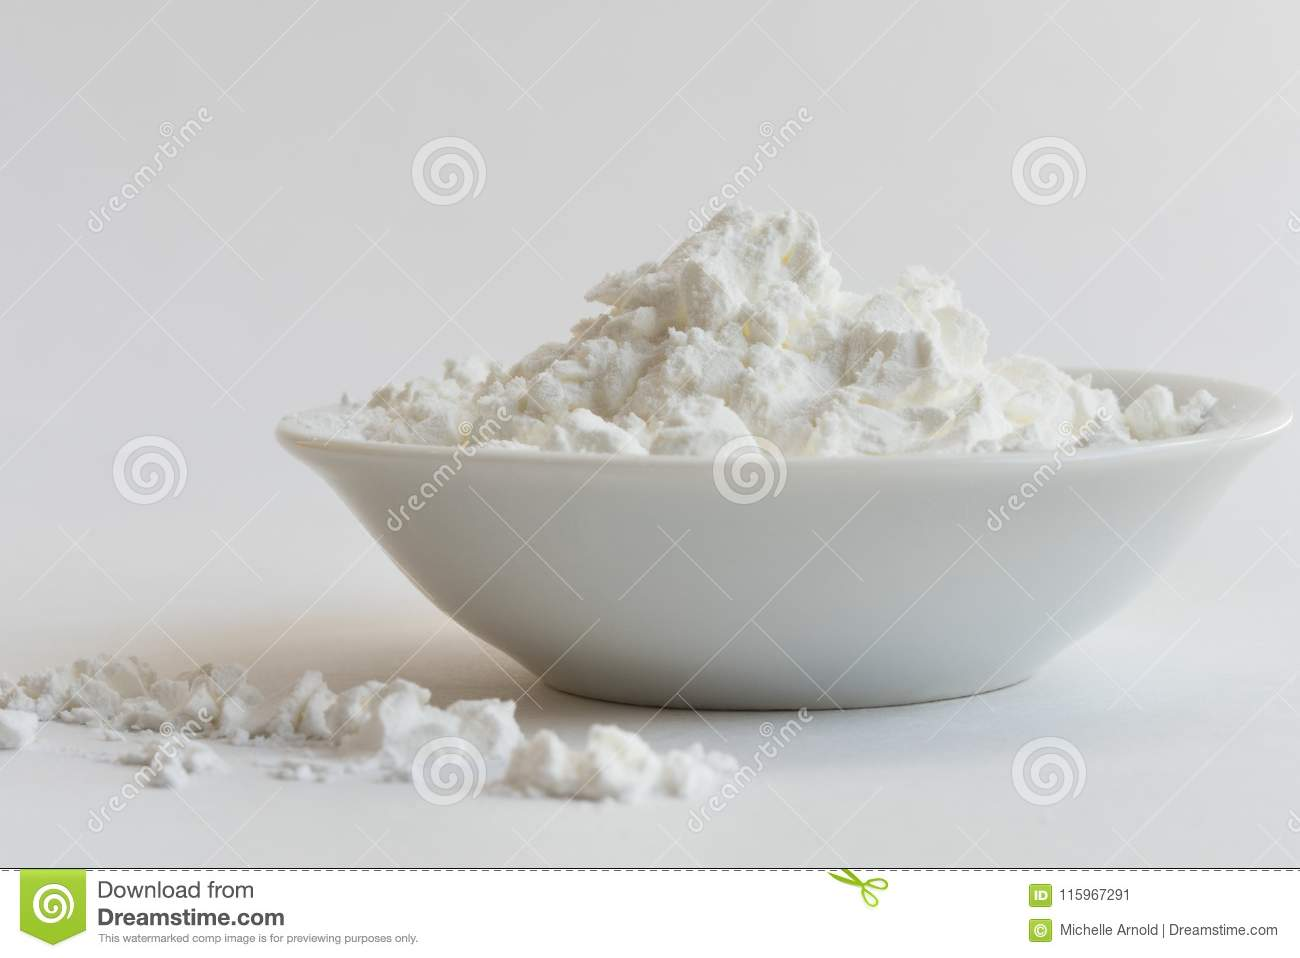 cornstarch heaped in a bowl stock image image of white ingredient